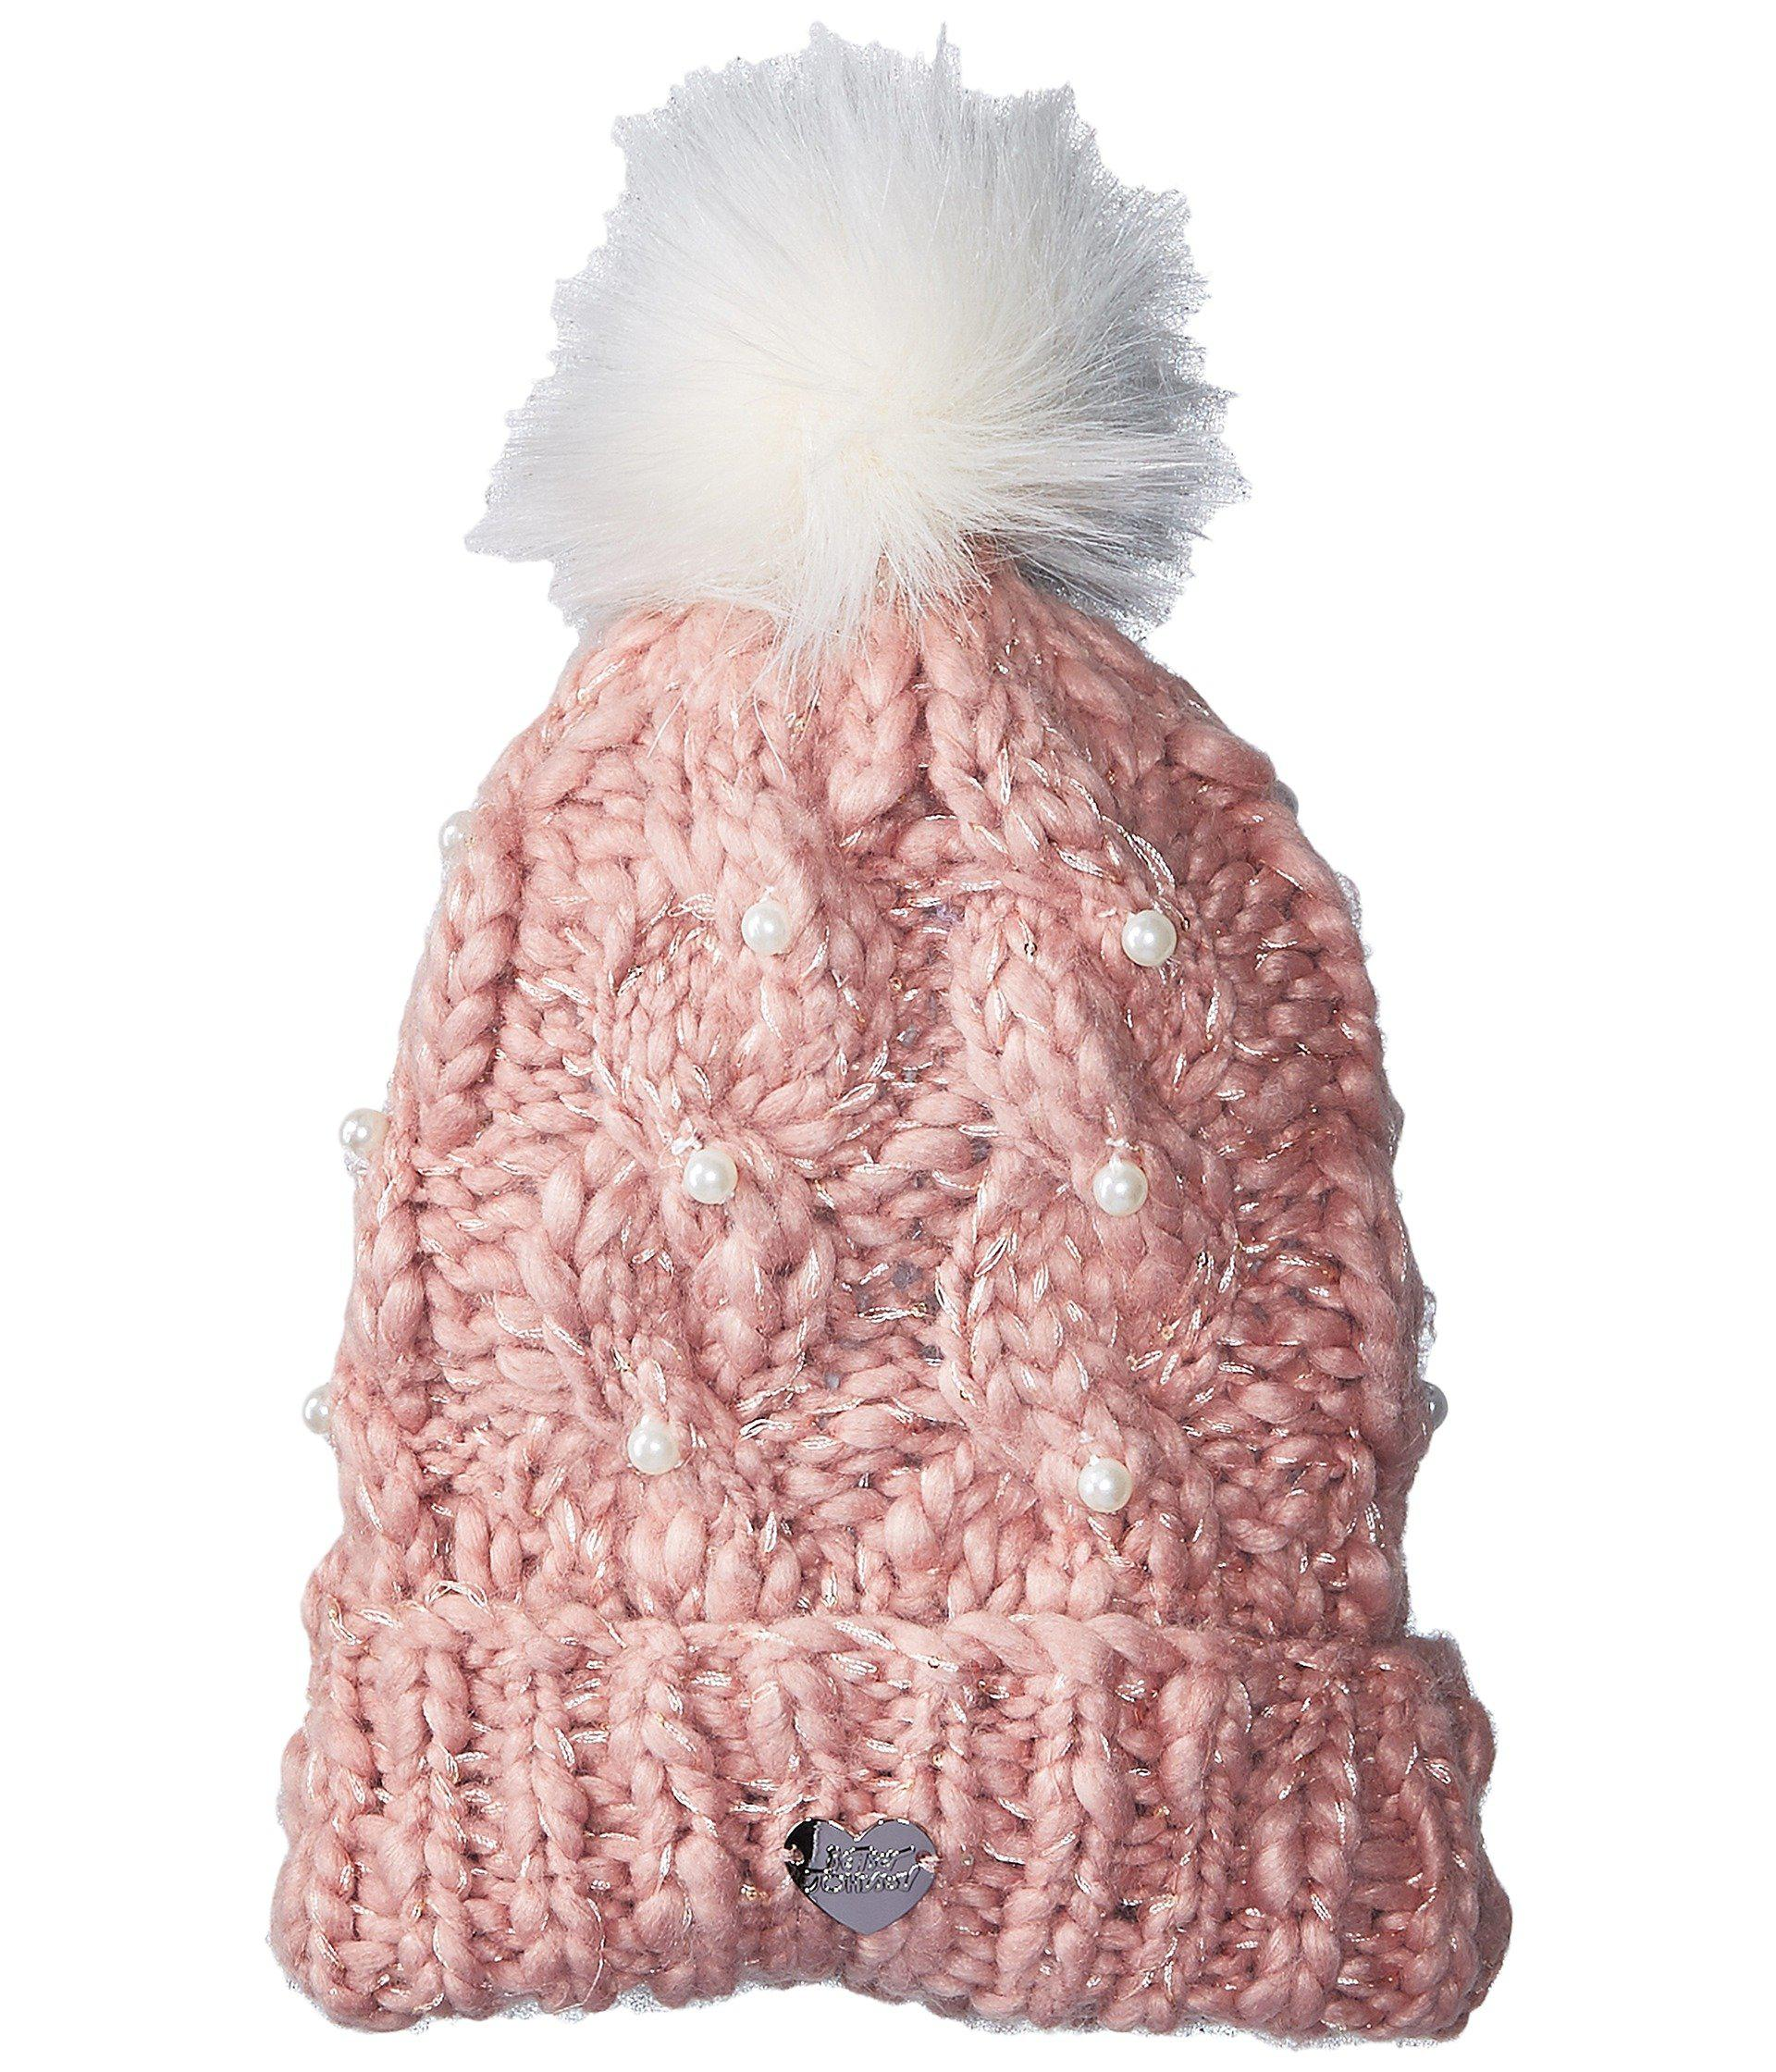 Lyst - Betsey Johnson Pearly Girl Cuff Hat in Pink 4ad52ec43